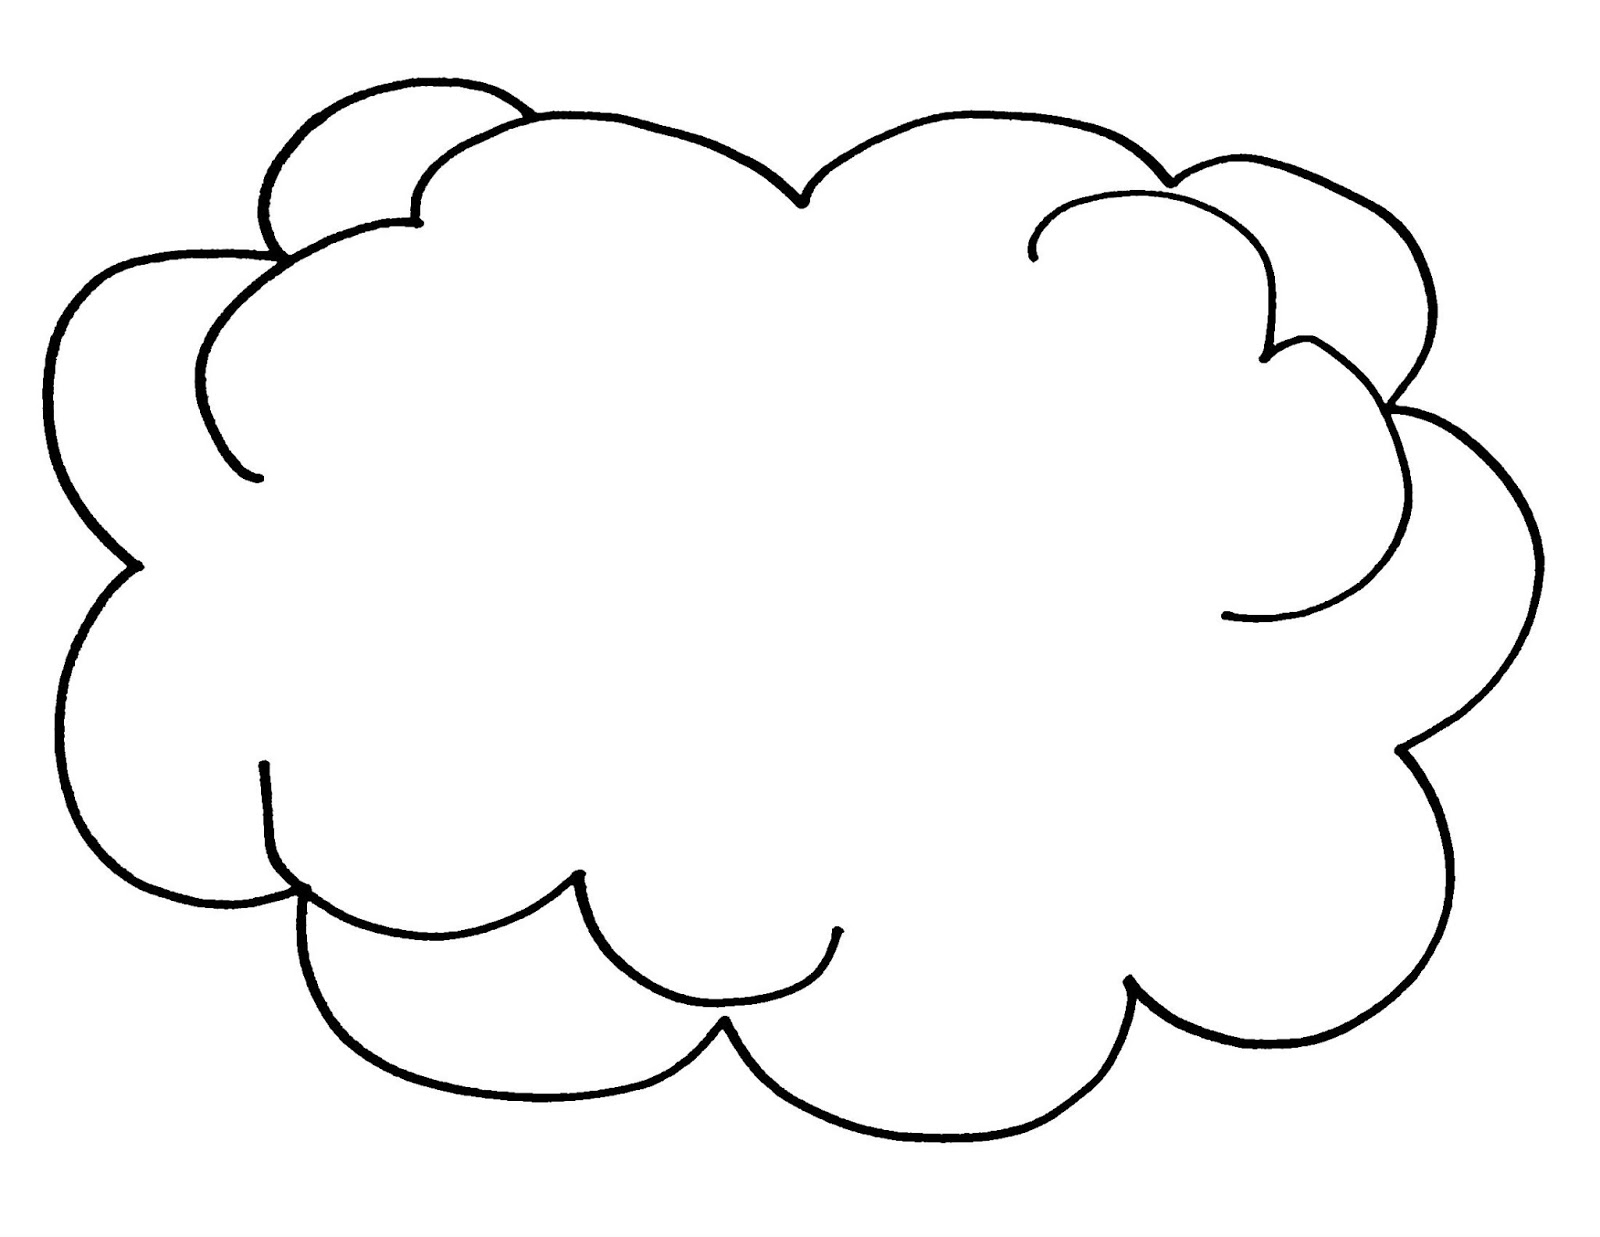 cloud coloring pages to print - Free Coloring Pages To Print